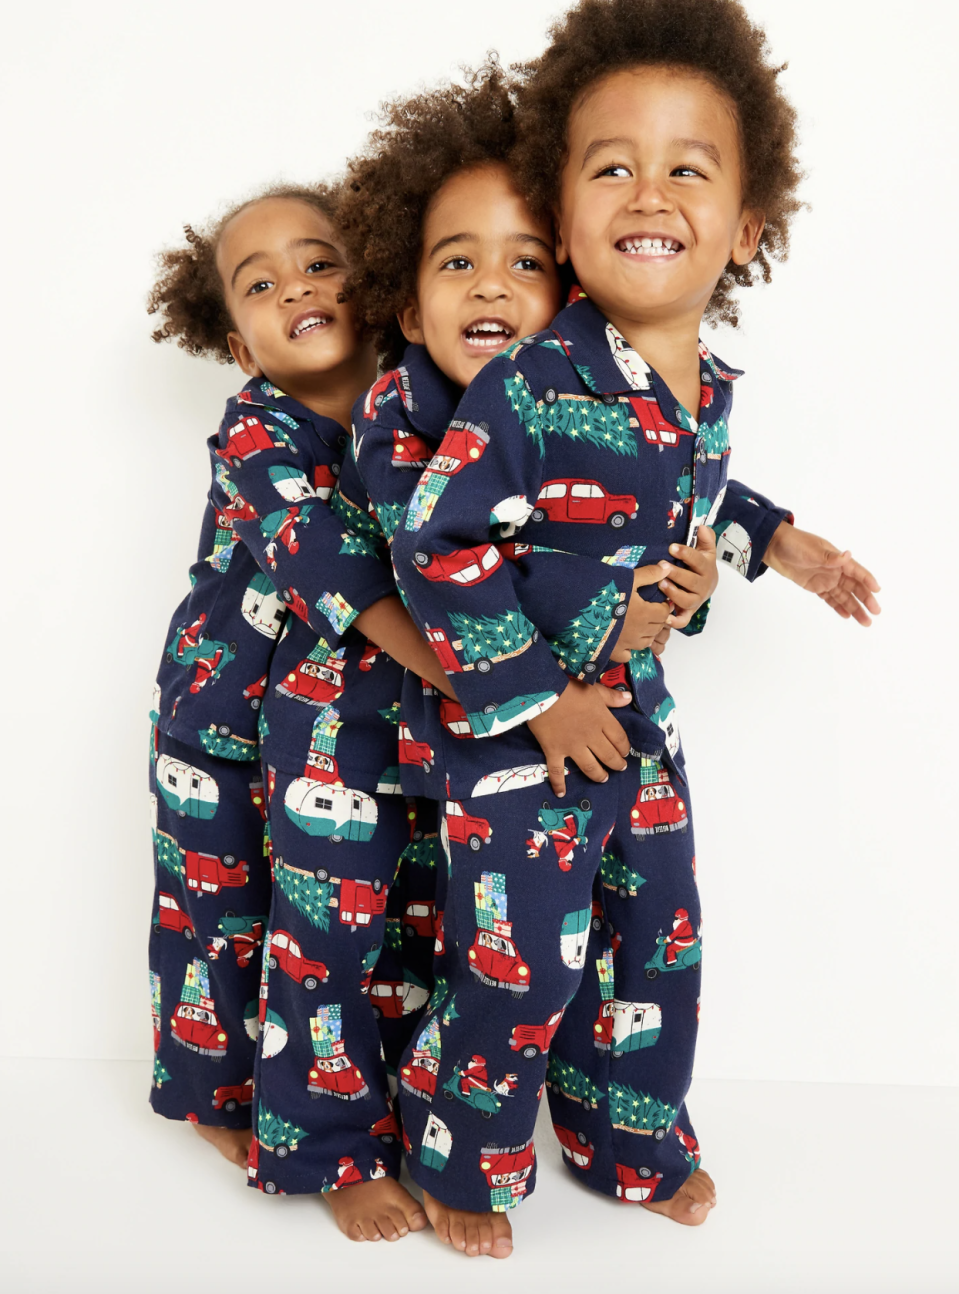 Unisex Lightweight Flannel Pajama Set for Toddlers - on sale at Old Navy for $17 (originally $33).